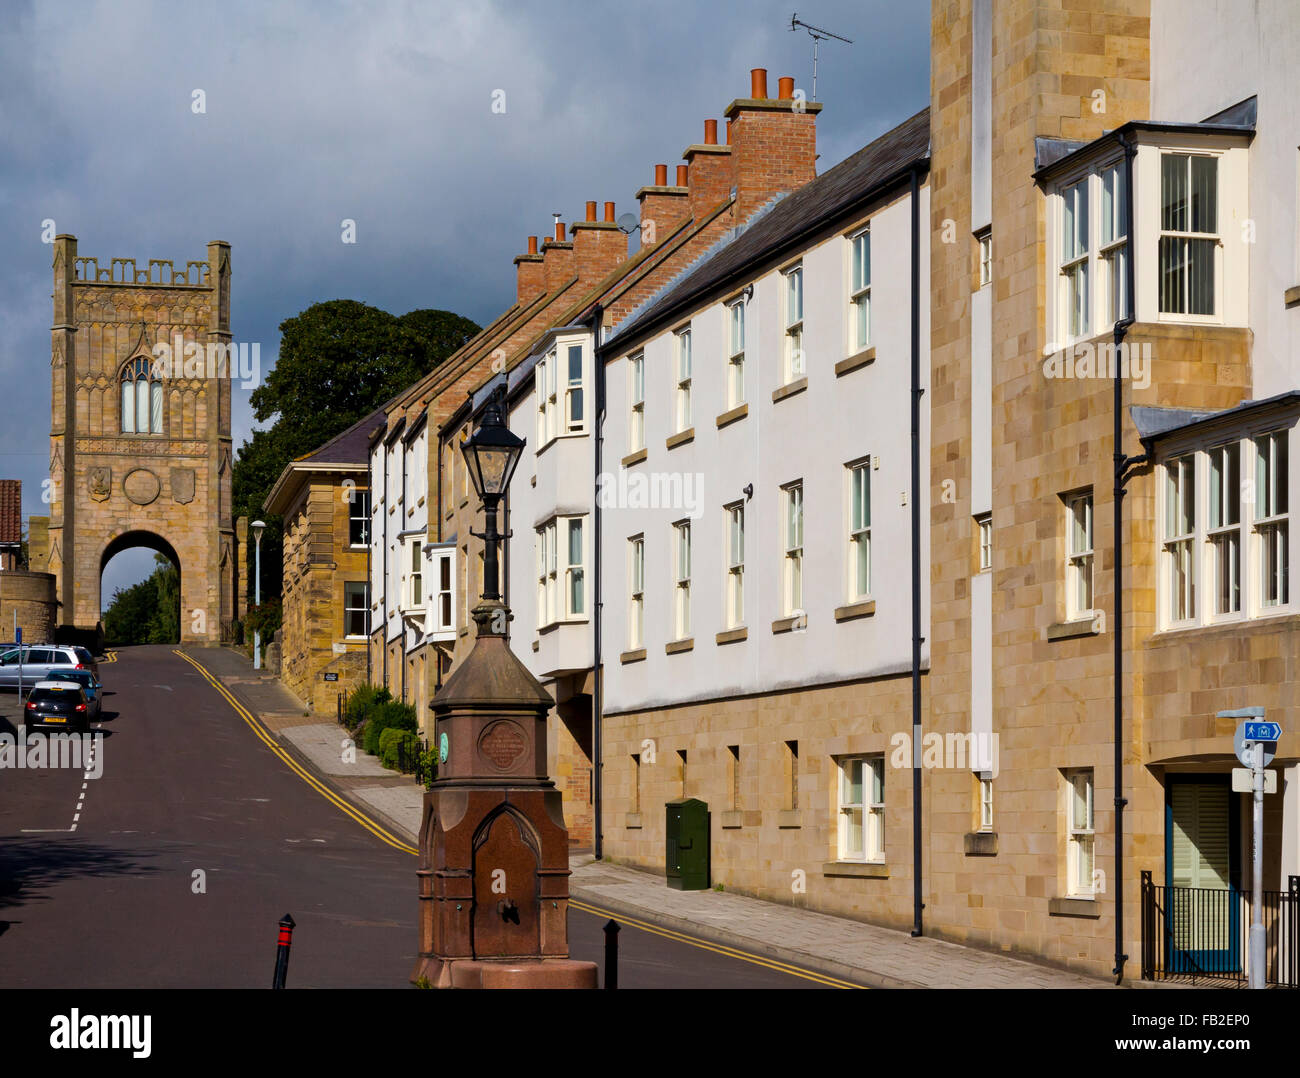 Pottergate Tower an ancient gate into the town of Alnwick in Northumberland England UK erected in 1768 - Stock Image